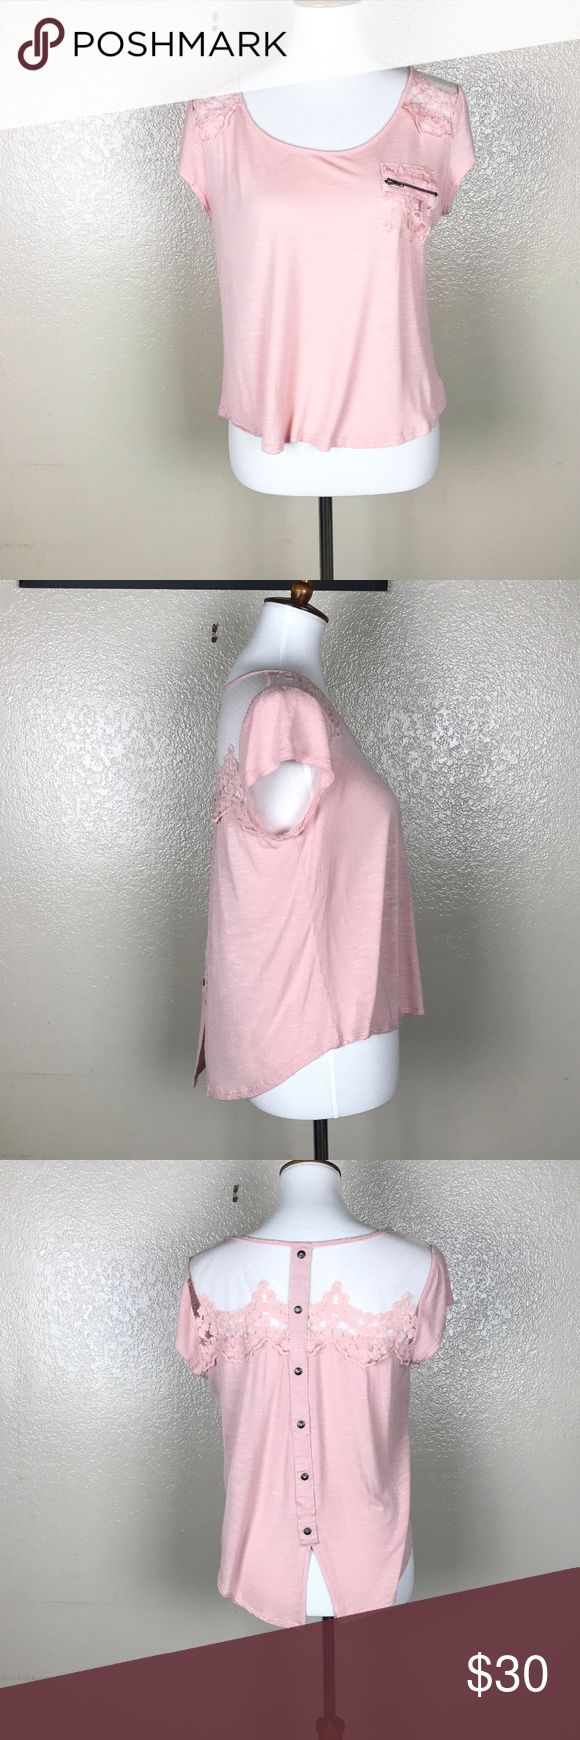 "E (Hanger) M Soft Pink Short Sleeve Top Size M NWOT  It such an adorable shirt it has a slit with buttons down the back 18"" armpit to armpit, 11.5 armpit to hem 20.5 Shoulder to hem Shelf: 100%  Rayon , Contrast: 100% Polyester Anthropologie Tops Blouses"